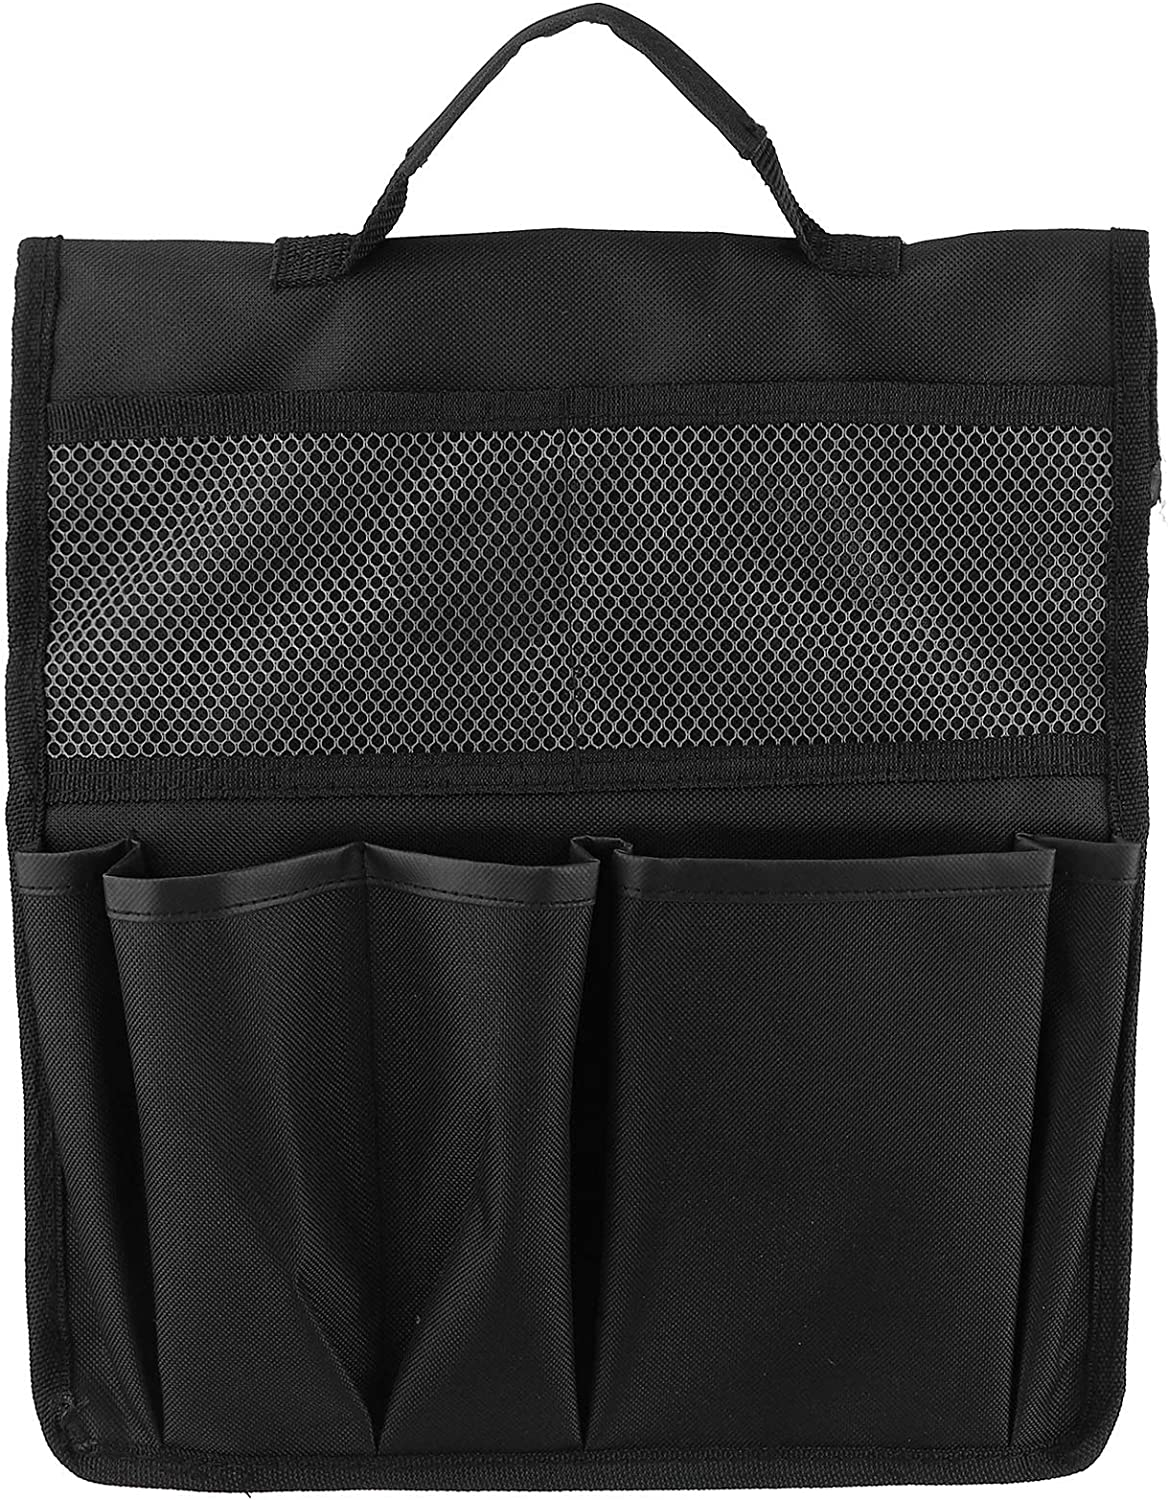 Alvinlite Garden Kneeler Tool Bag Max 41% OFF Seat Stool Our shop most popular Storage Tote Pouch